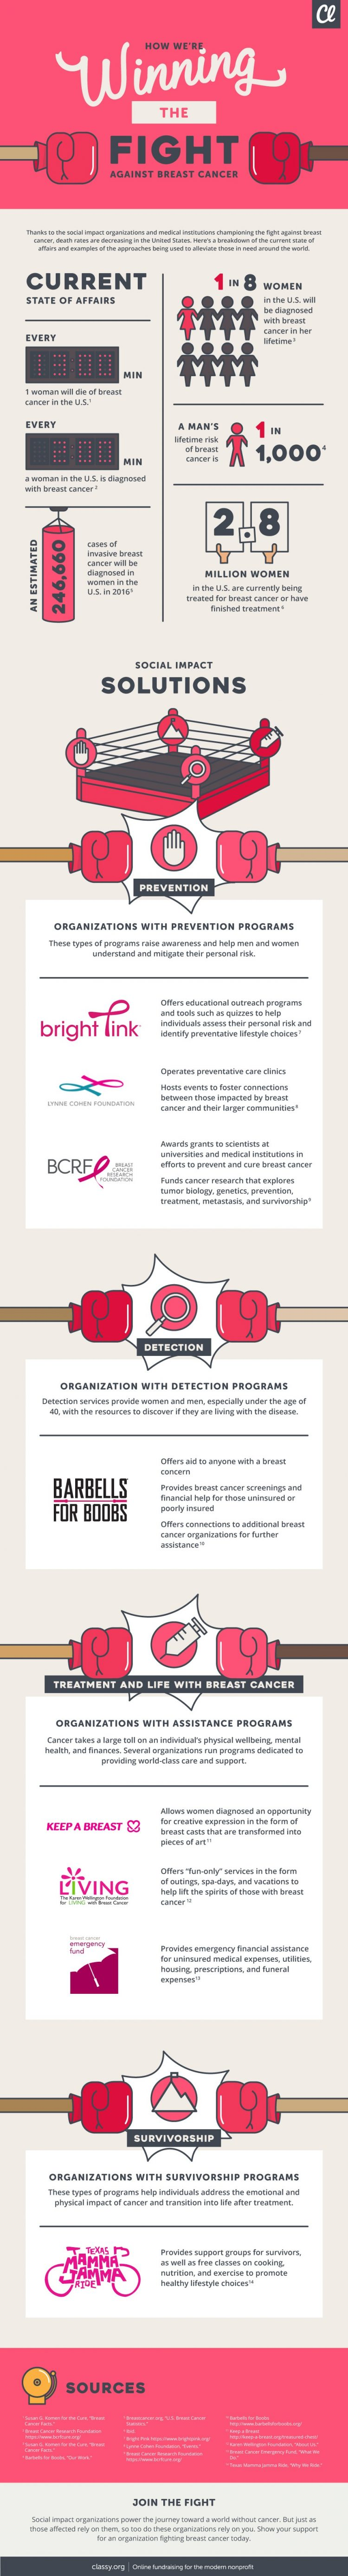 Infographic on the fight against breast cancer